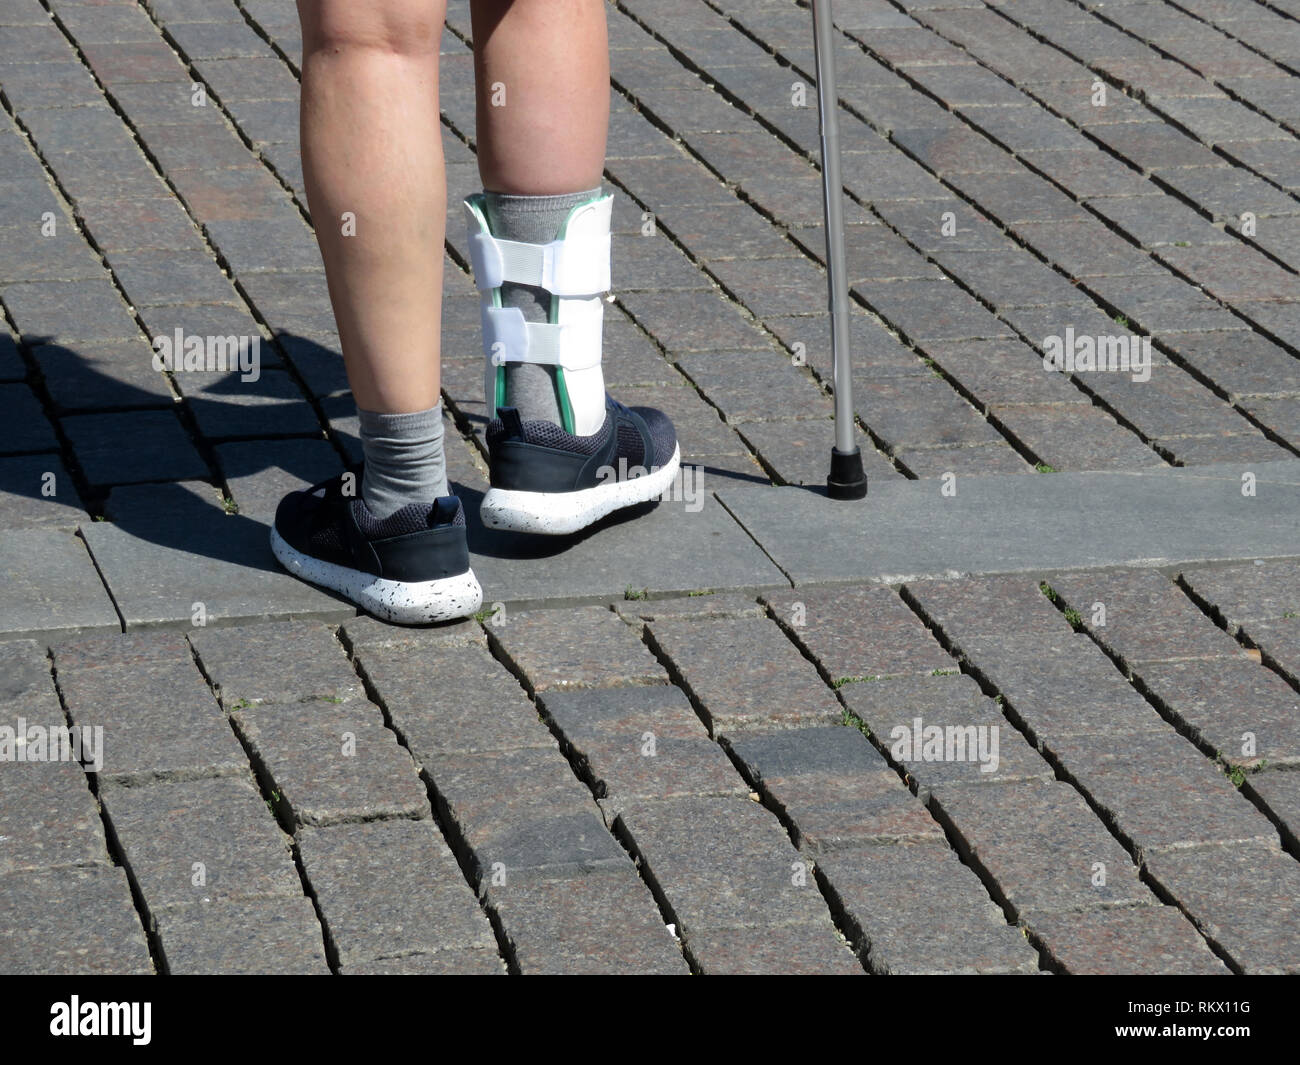 Female feet with the splint, orthosis for leg. Person with cane walking after a broken or sprain legs. Orthopedic orthosis for immobilizing foot - Stock Image